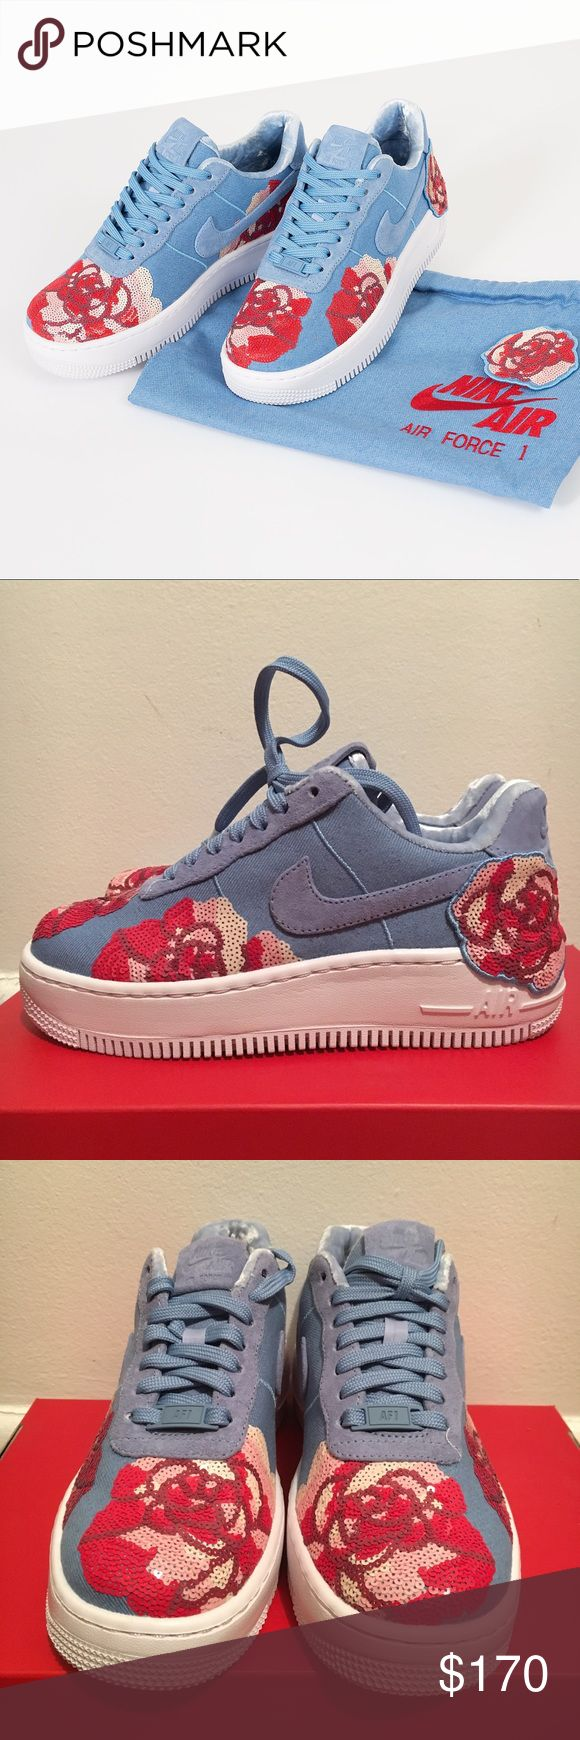 *NEW* Womens Airforce 1 Upstep LX *OFFER* Womens AF1 Low Floral Sequin Pack || BRAND NEW || Size 6 Women's || Out of Stock on Nike || Sold out in stores || Suede inside || Box with no lid || Comes With Bag || OFFER! Nike Shoes Sneakers